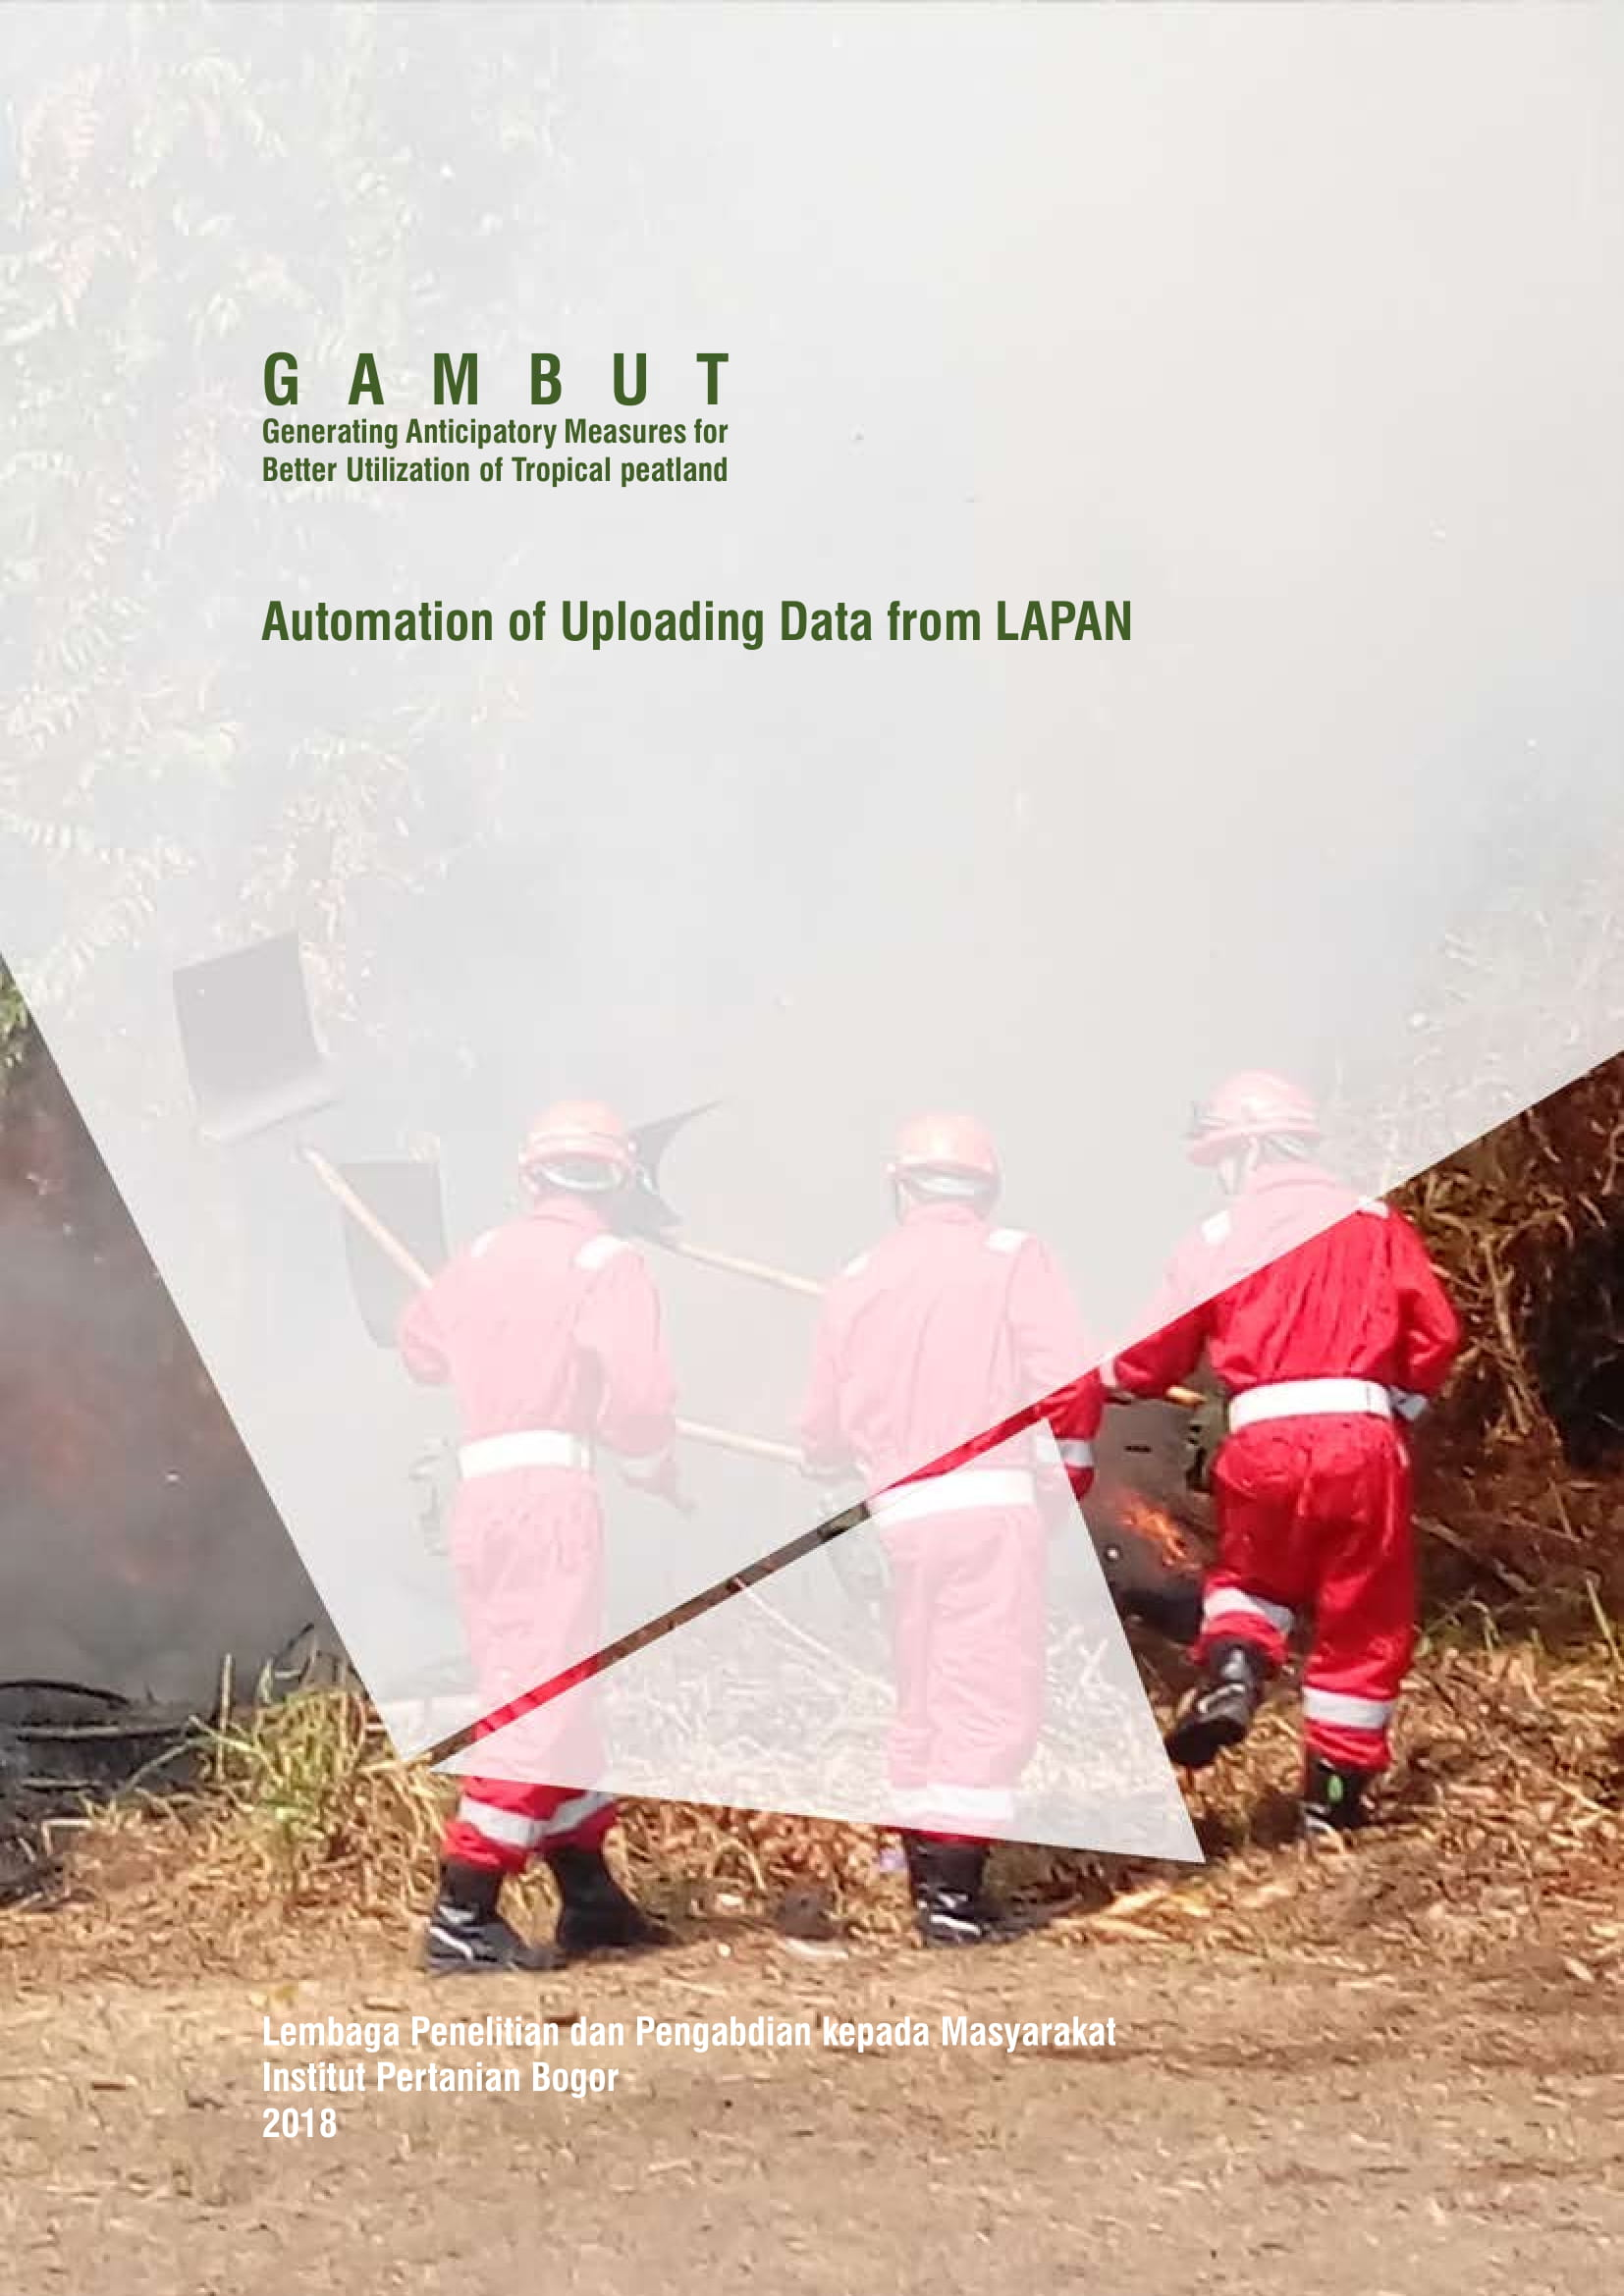 automation uploading data lapan 1-1.jpg